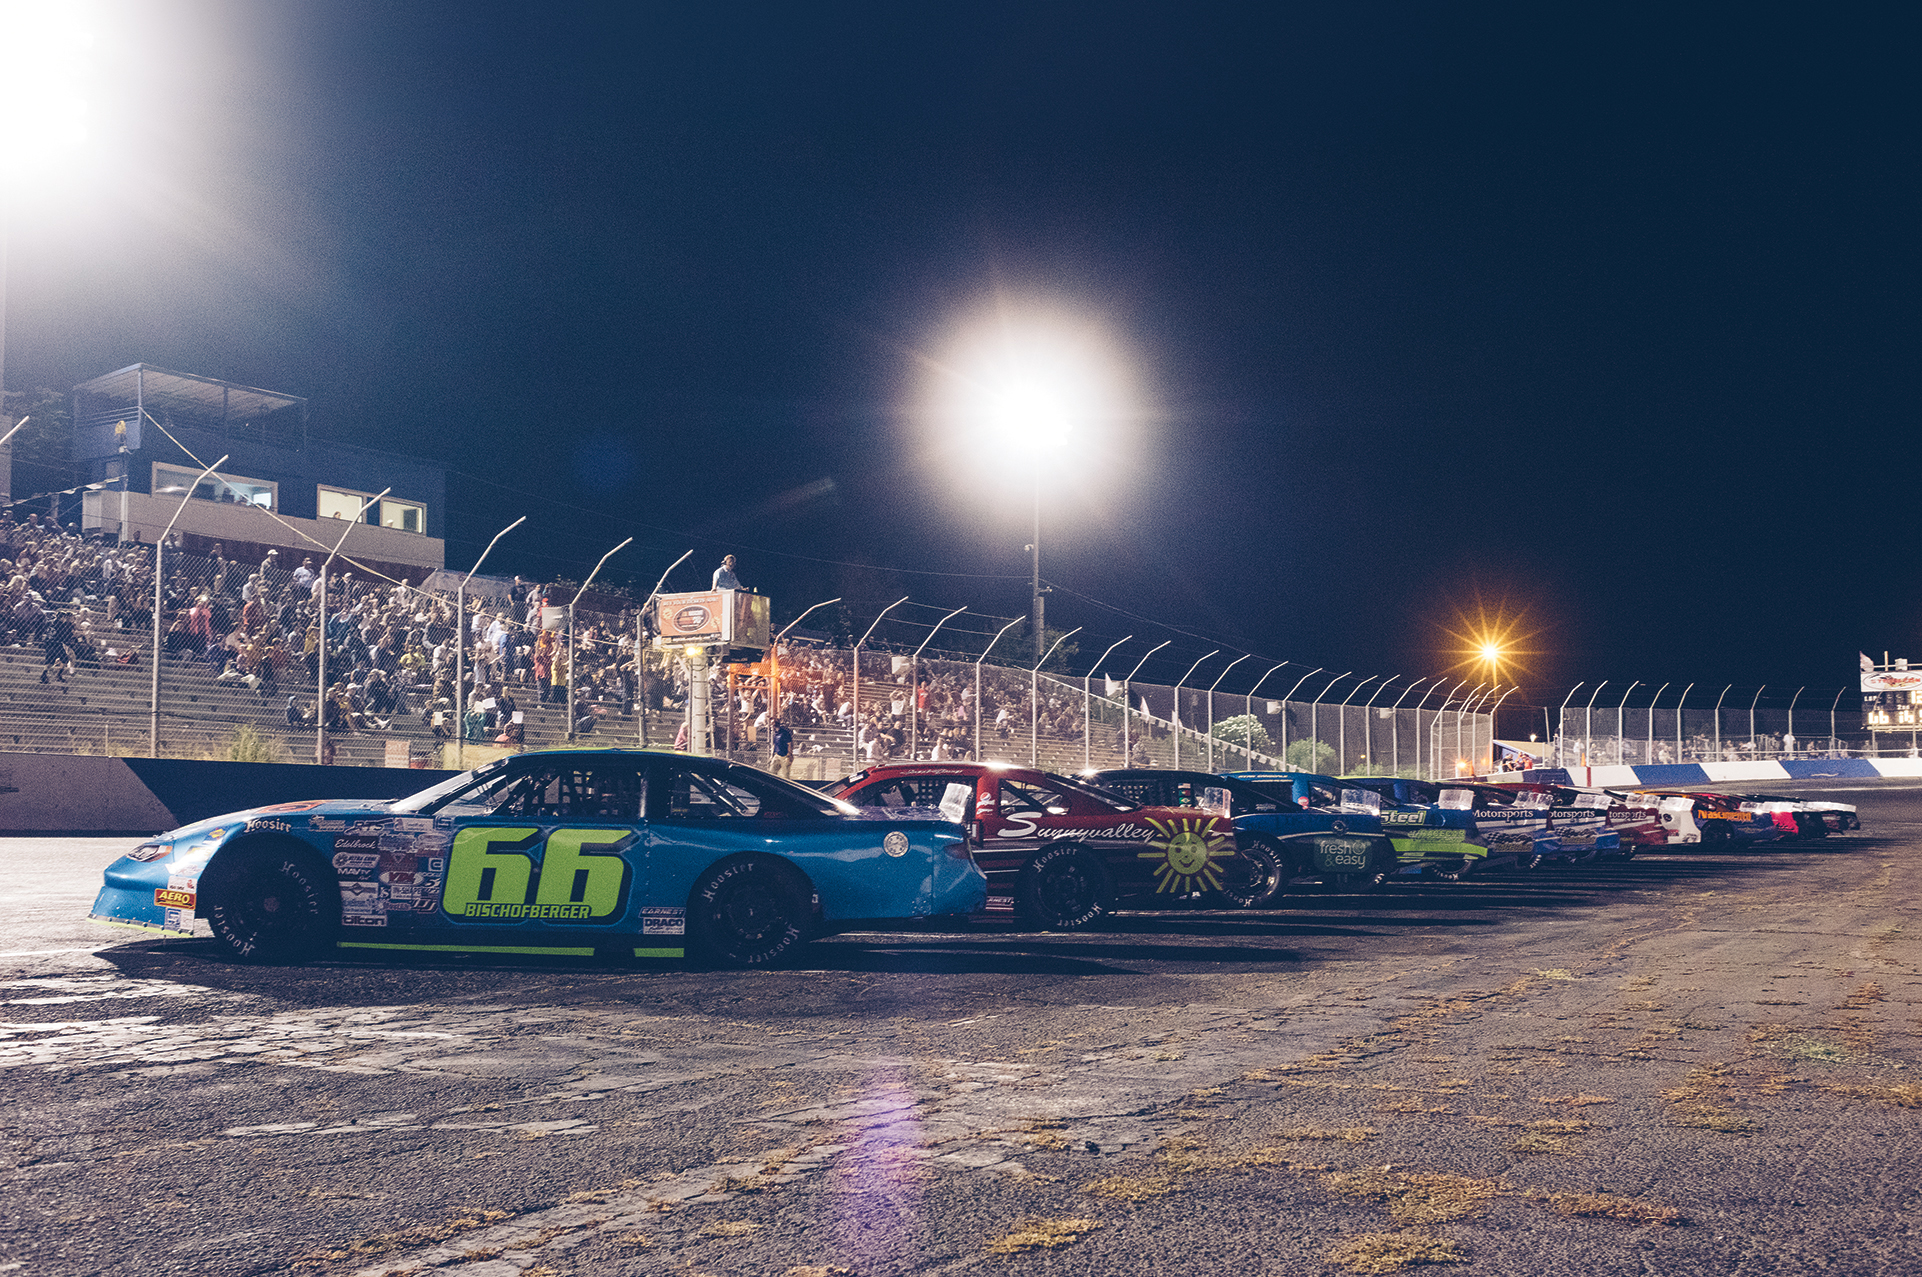 Southwest Tour late models in staging for the main event at Stockton 99.